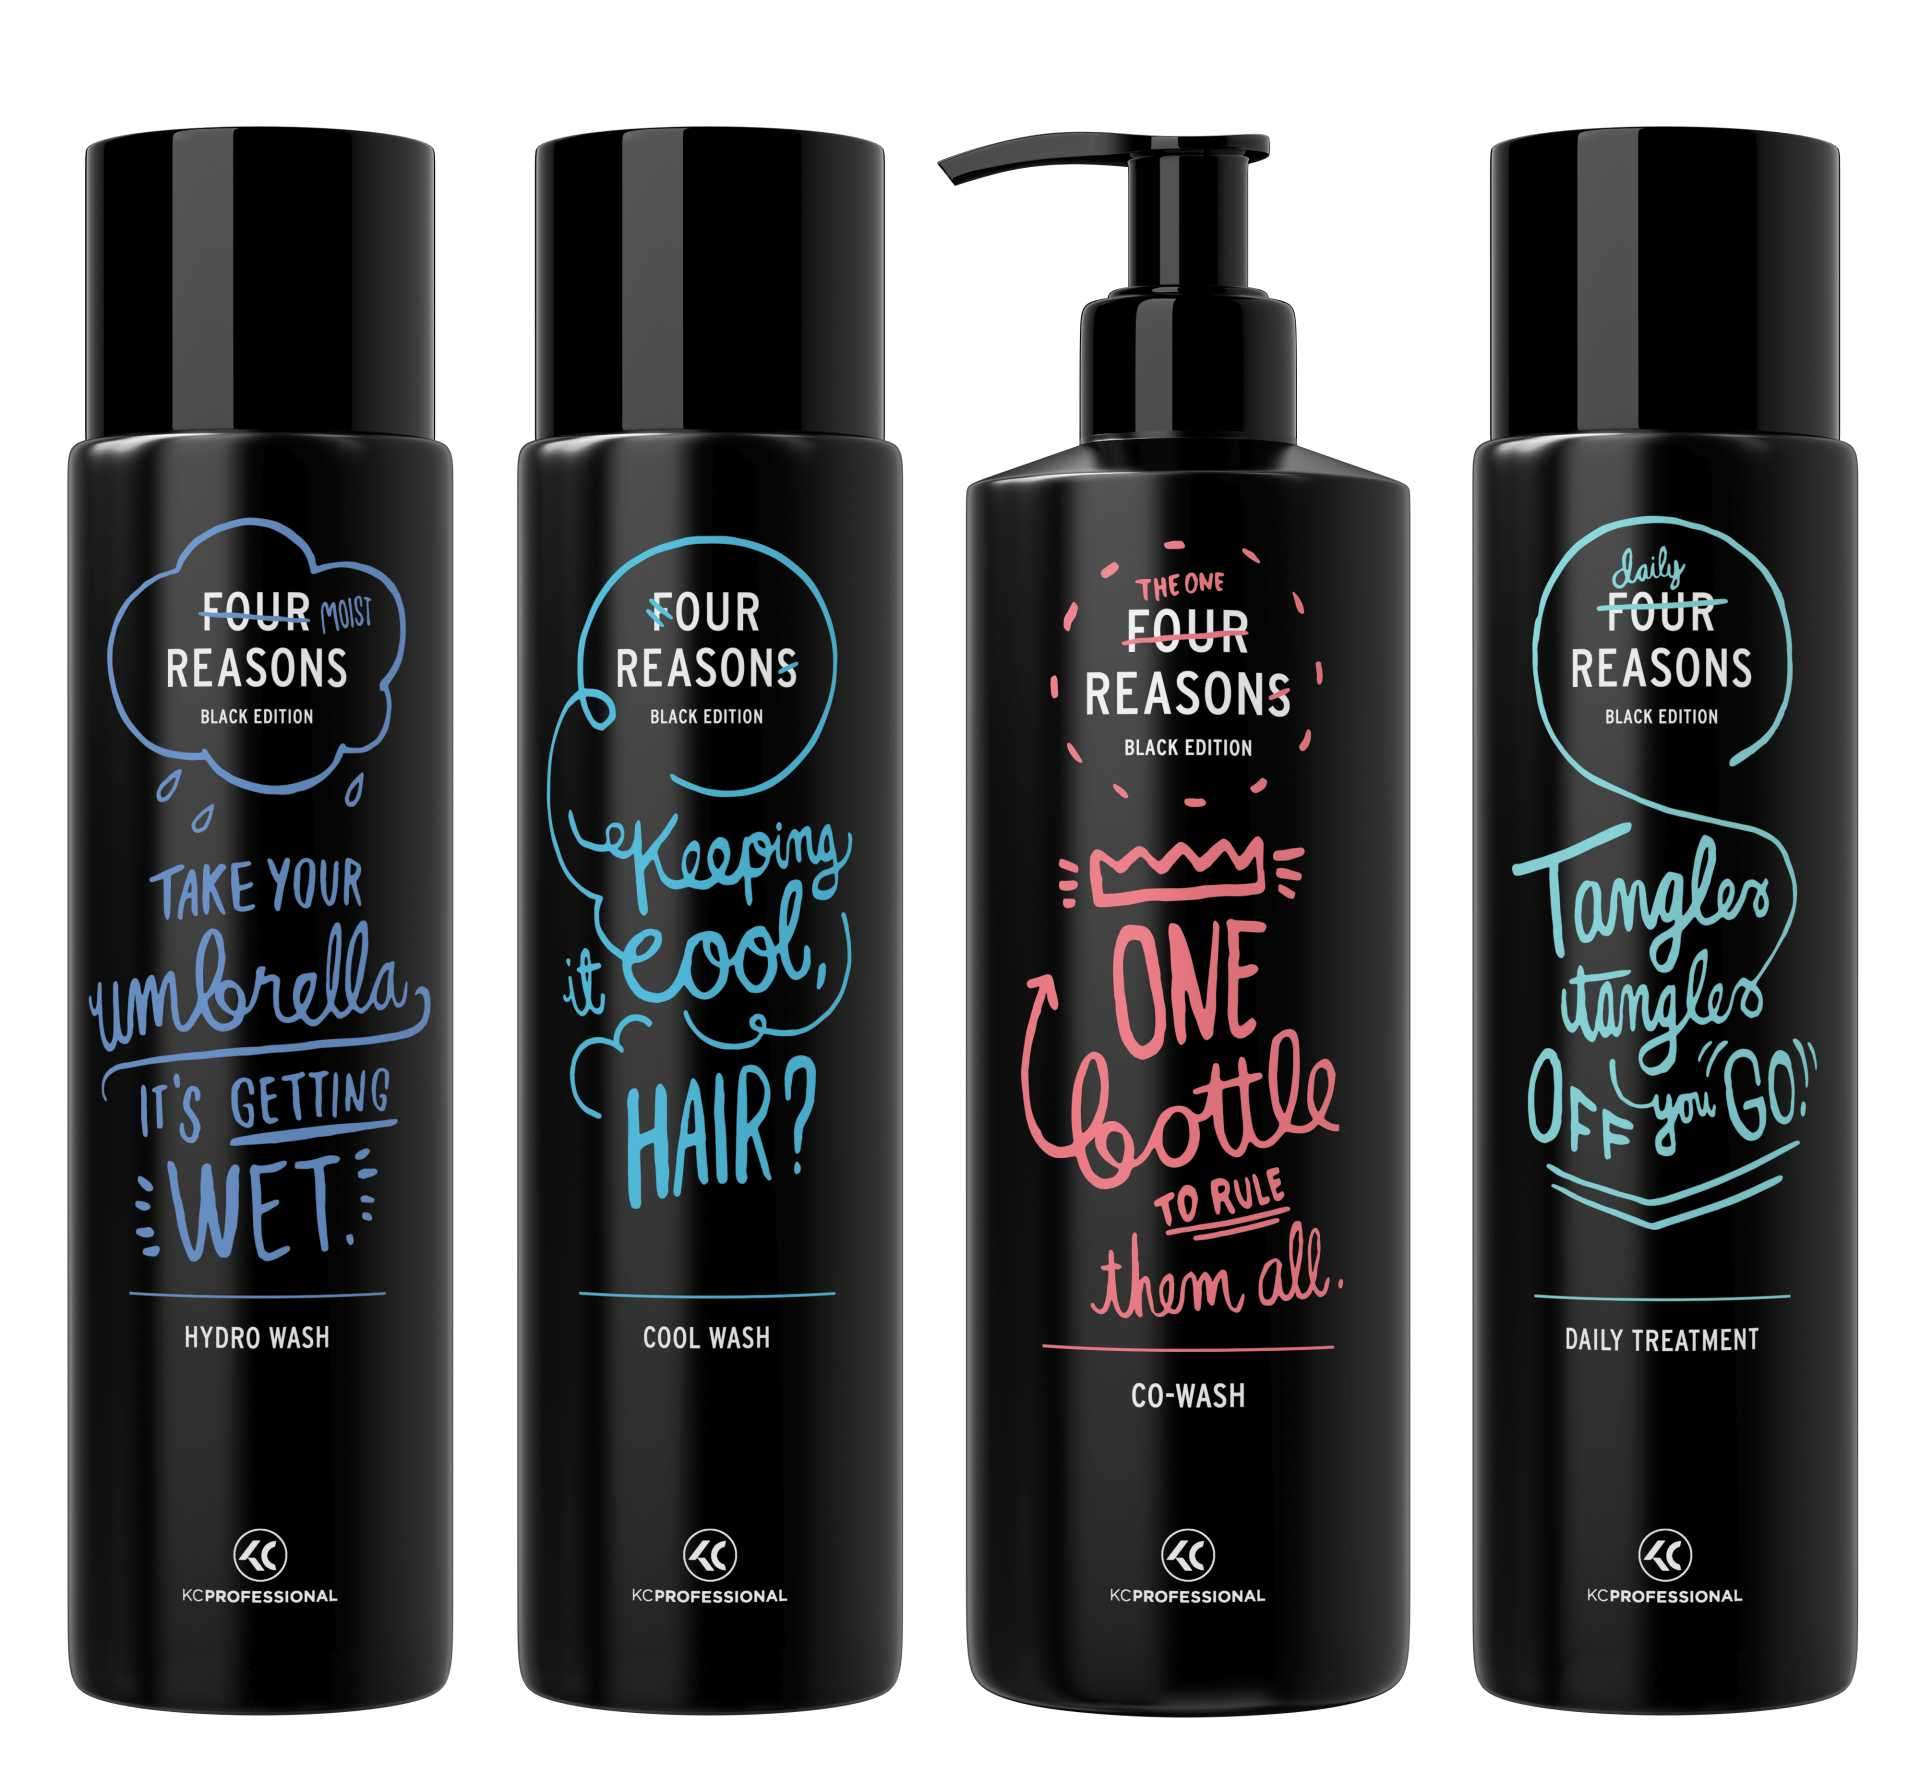 Four Reasons Black Edition shampoo